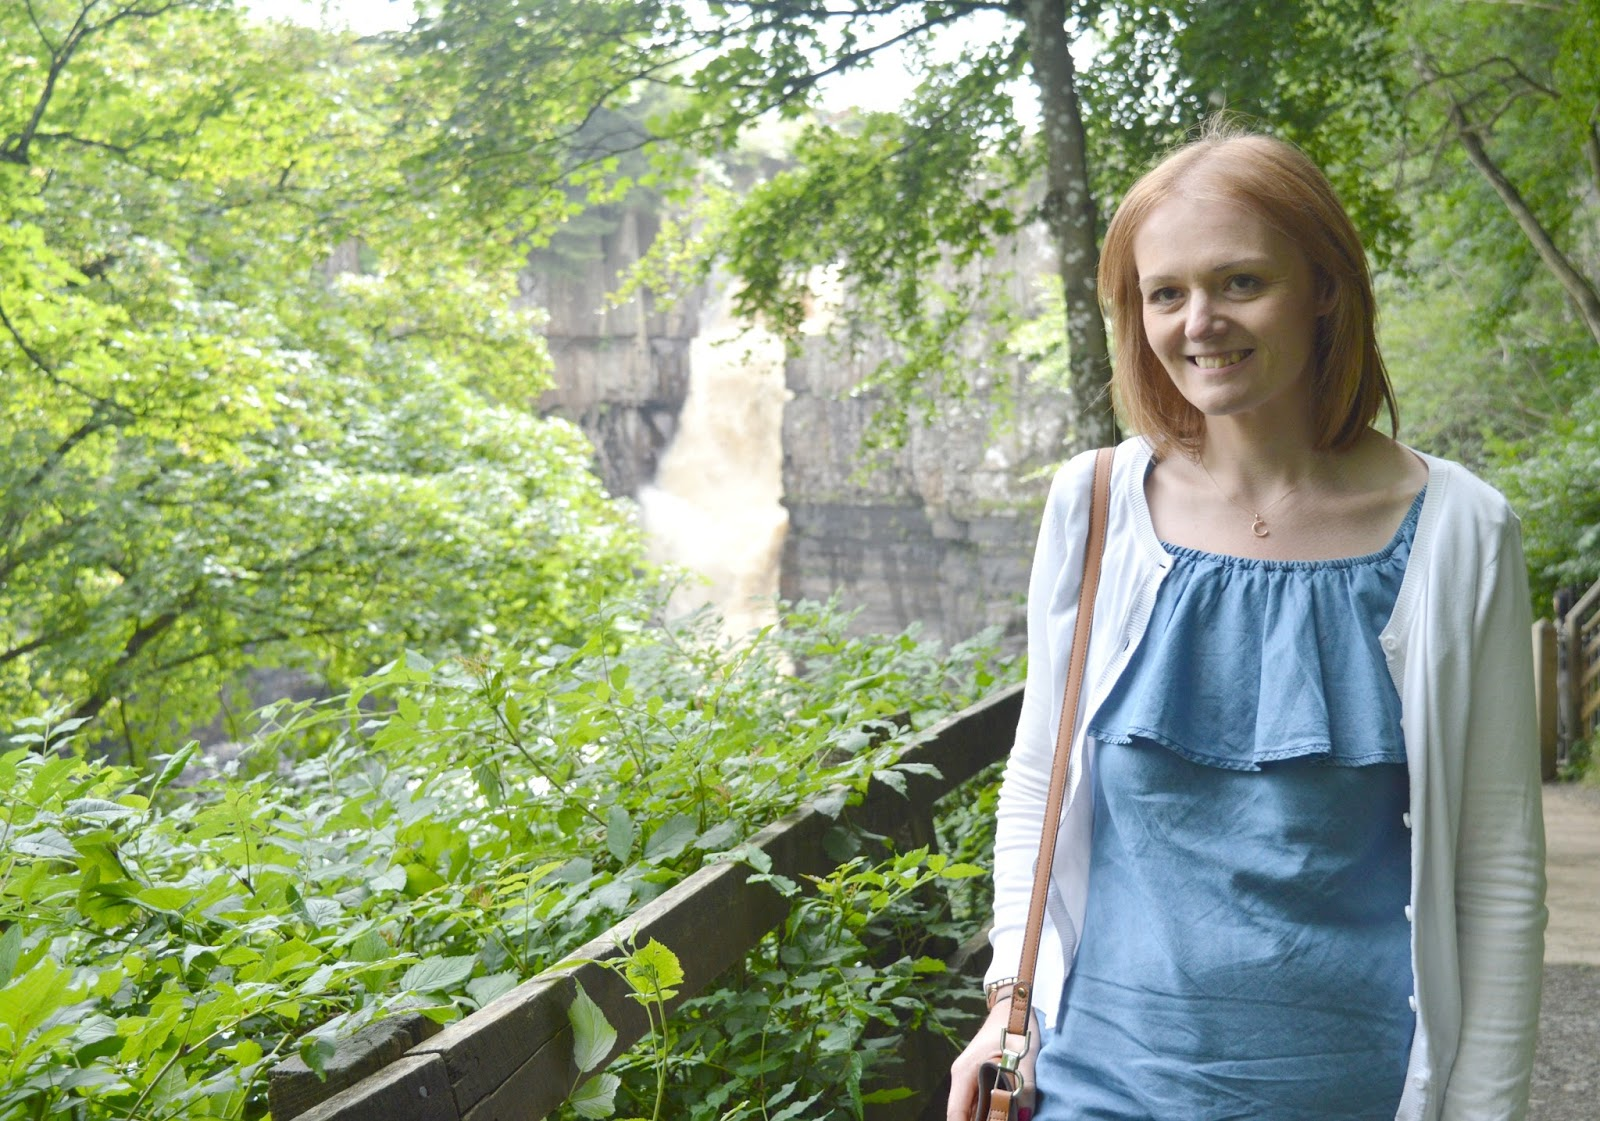 Romantic Dates for Valentines Day - High Force Waterfall